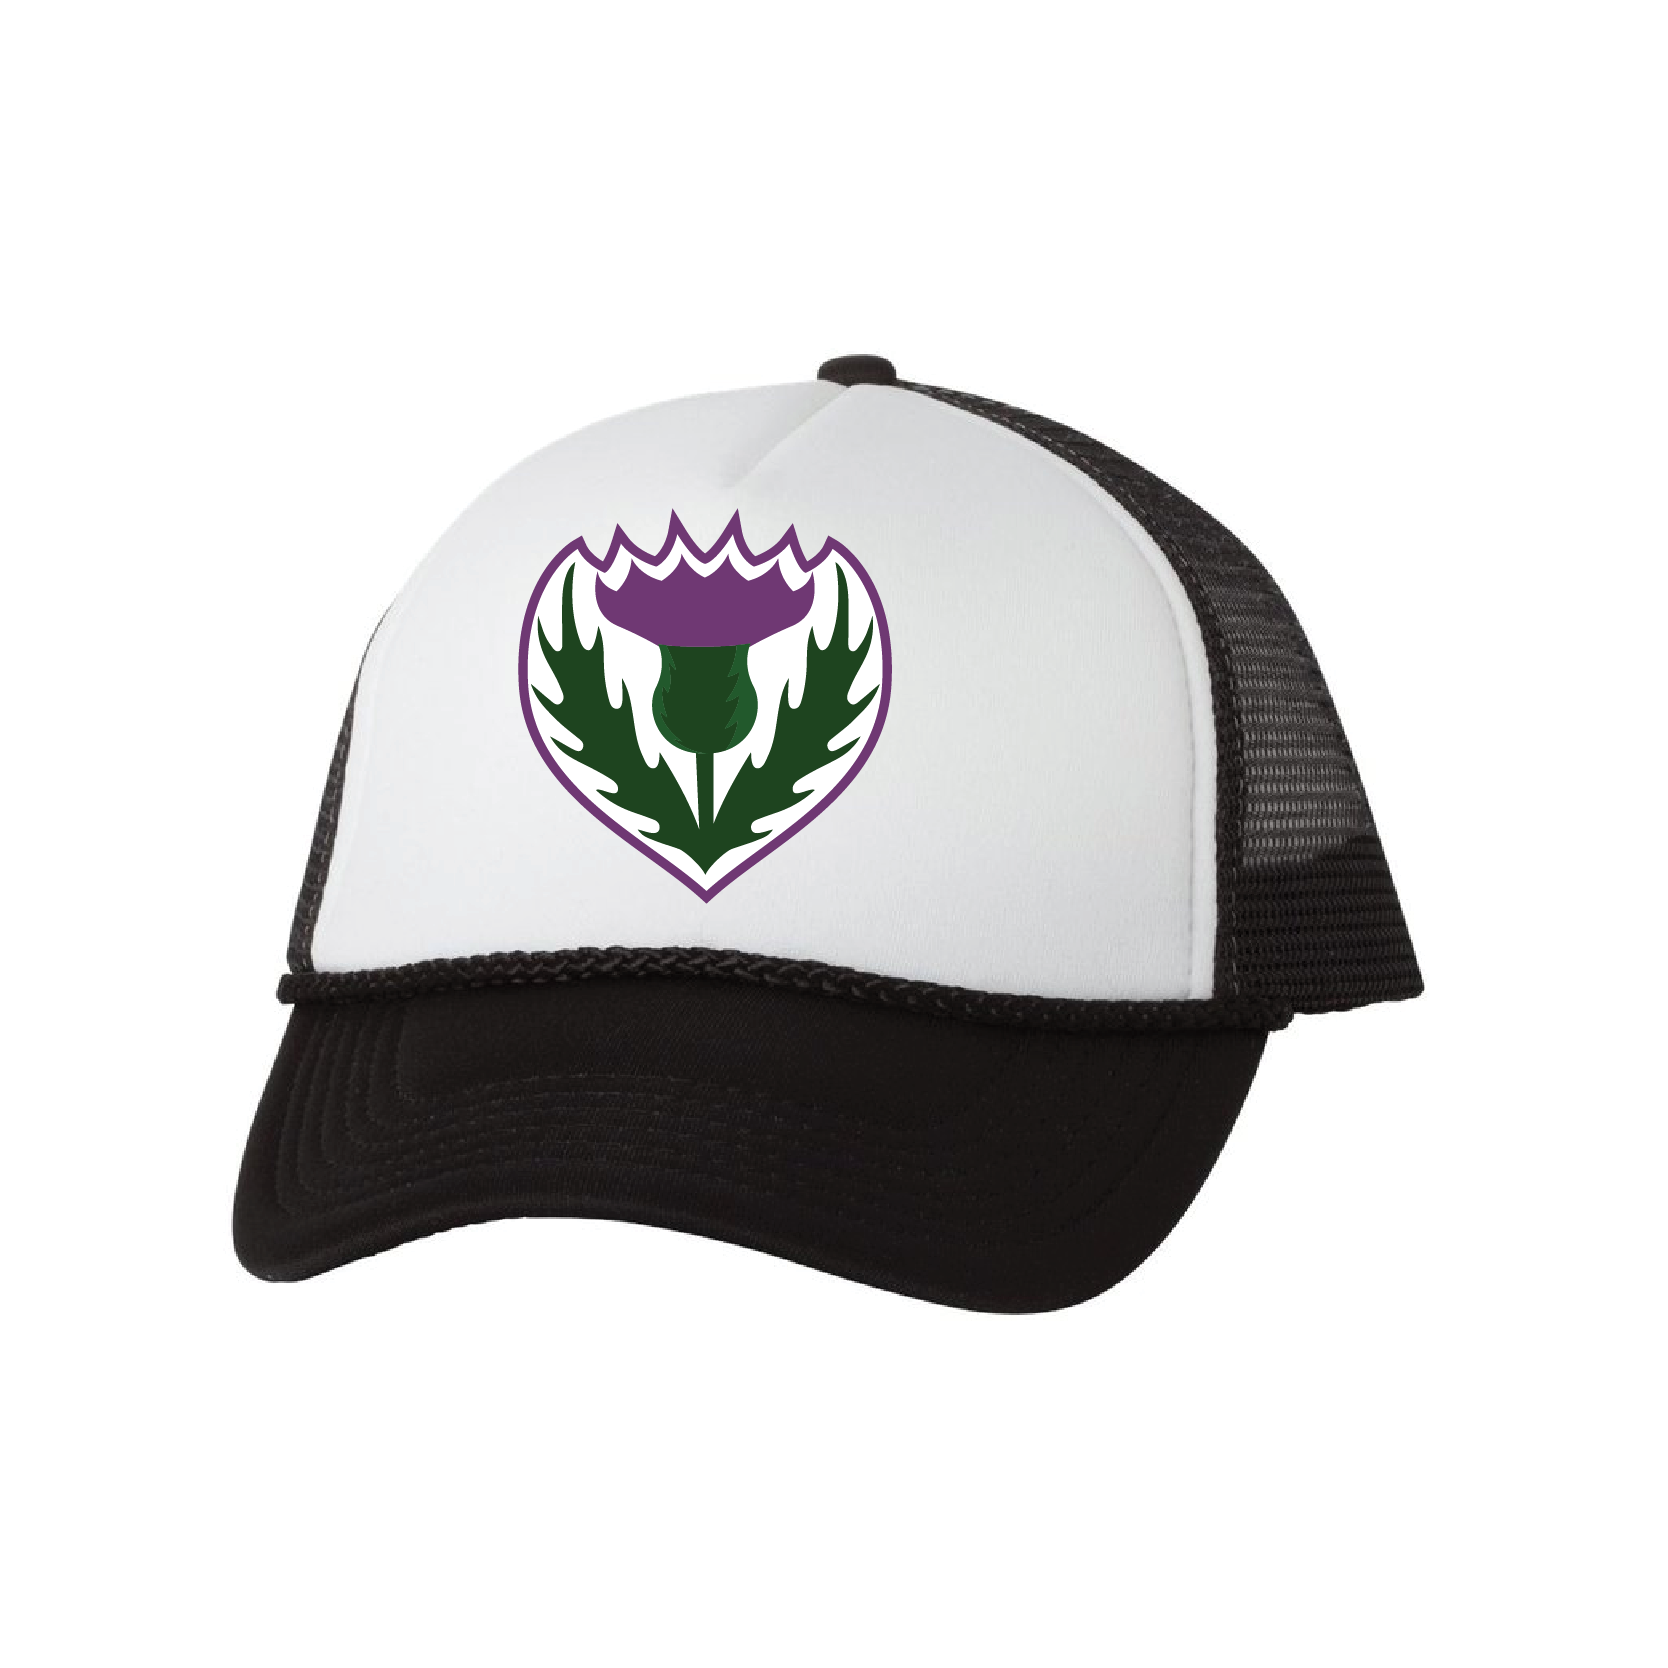 QPL Scottish Thistles Trucker Hat